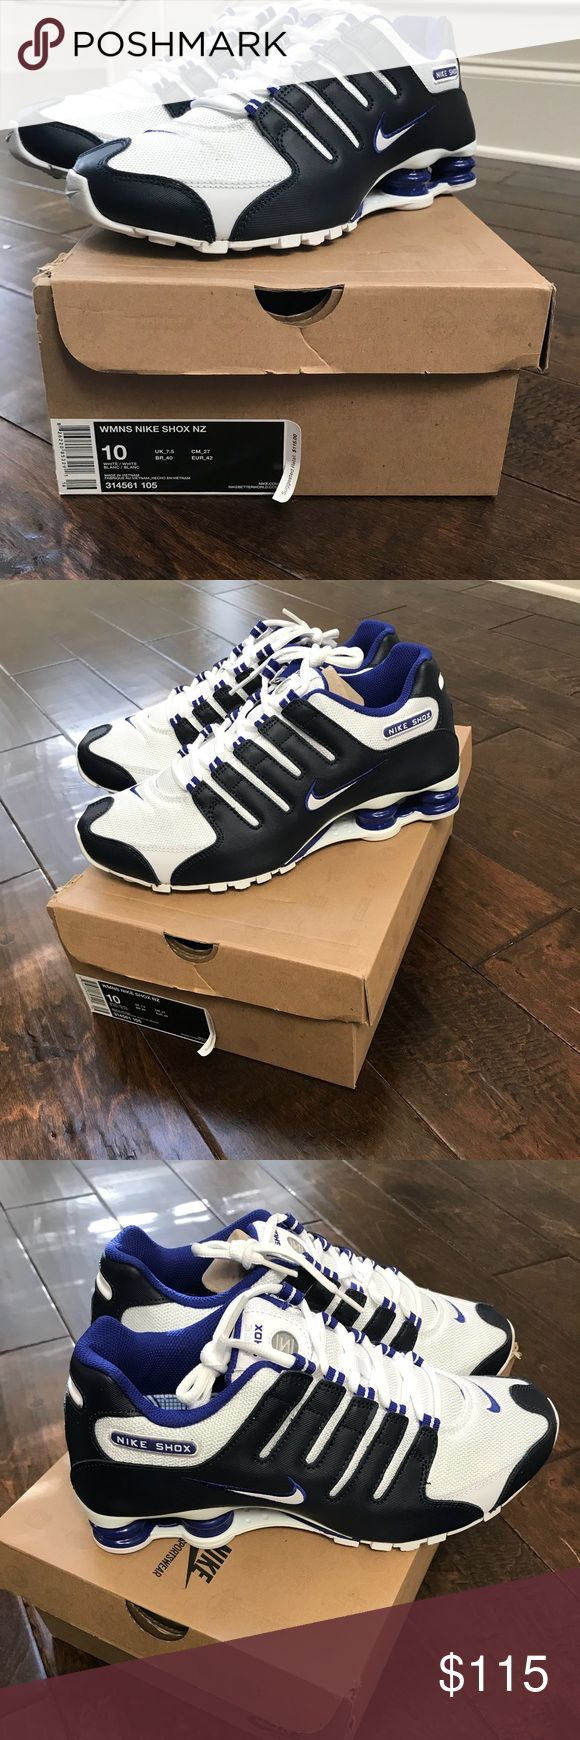 Nike Shox NZ Brand new women Nike shox purchased but never used. Size 10 Nike Shoes Sneakers